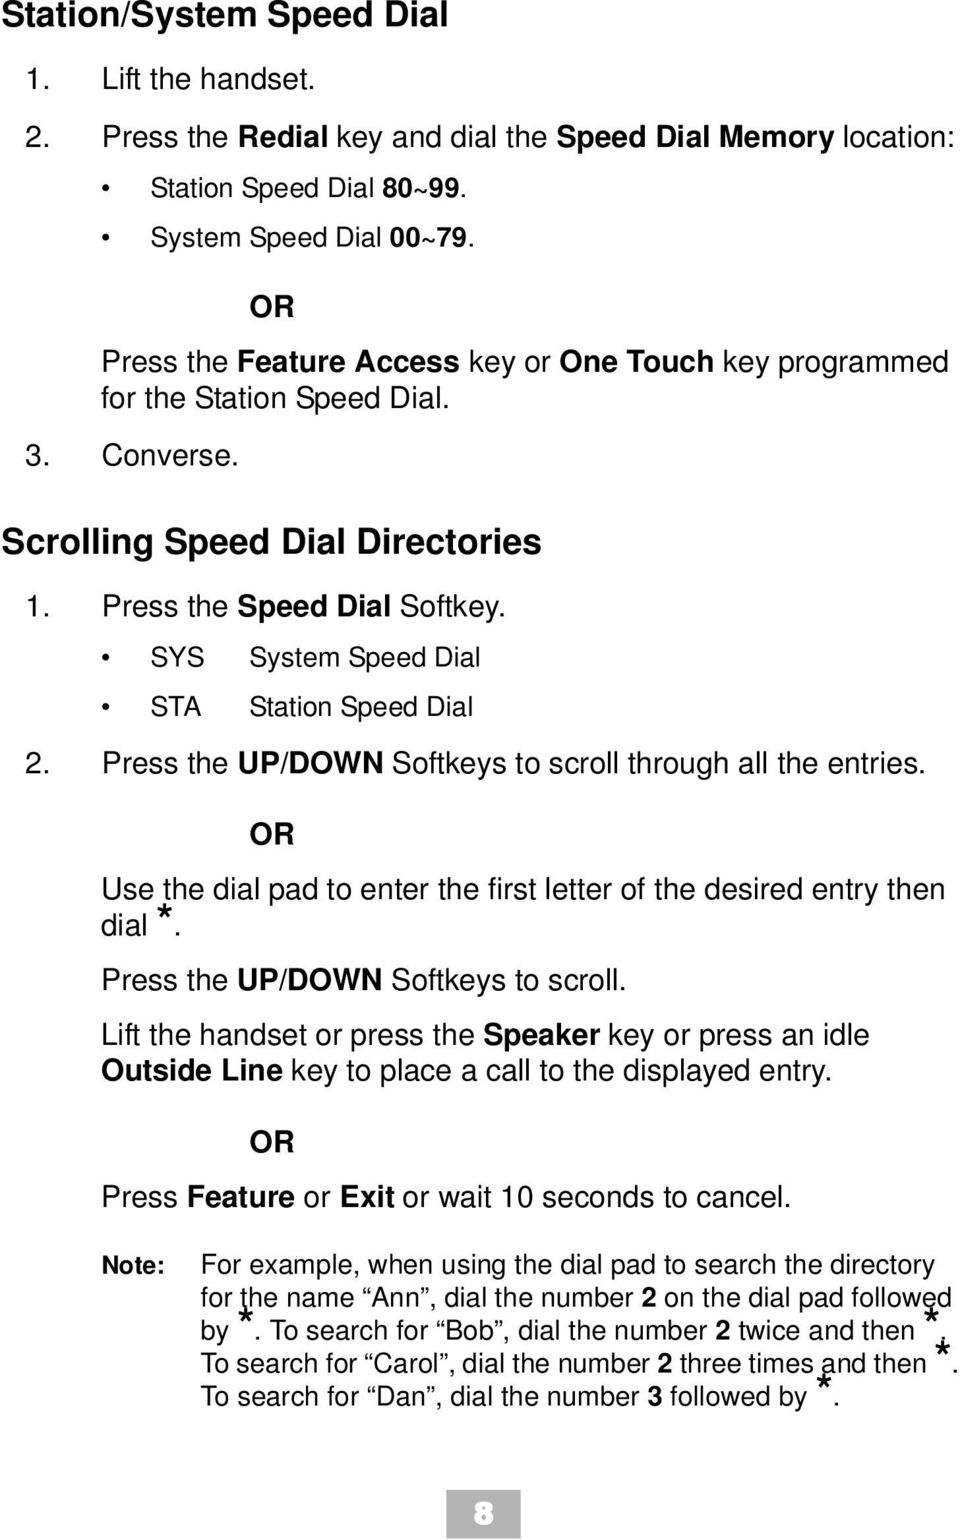 SYS System Speed Dial STA Station Speed Dial 2. Press the UP/DOWN Softkeys to scroll through all the entries. OR Use the dial pad to enter the first letter of the desired entry then dial *.